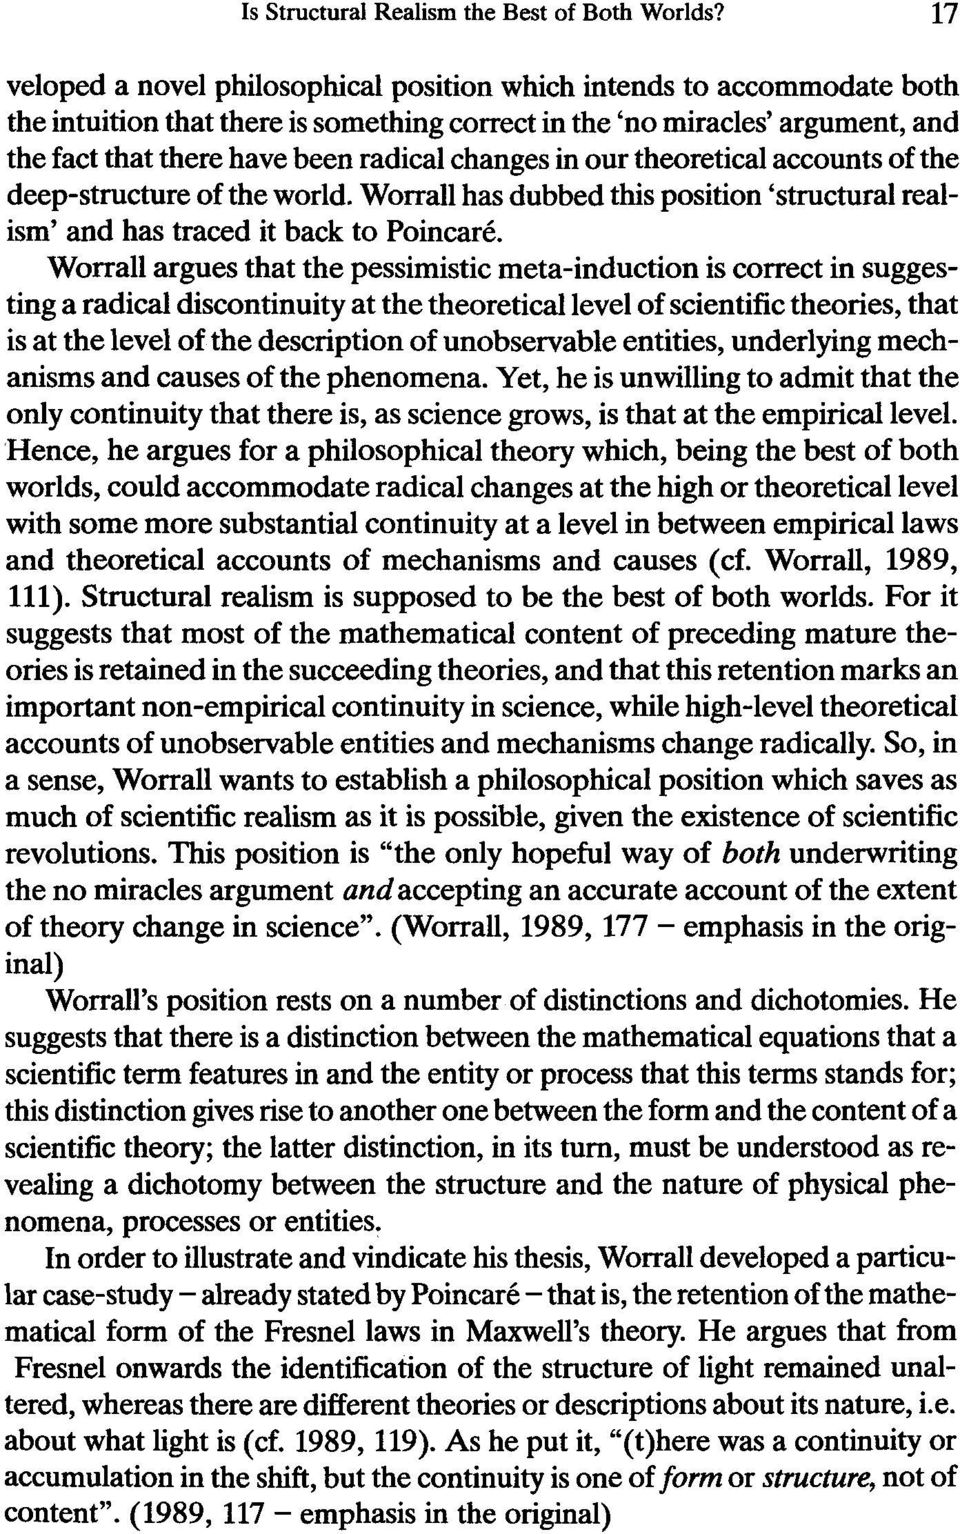 changes in our theoretical accounts of the deep-structure of the world. Worrall has dubbed this position structural realism and has traced it back to PoincarC.